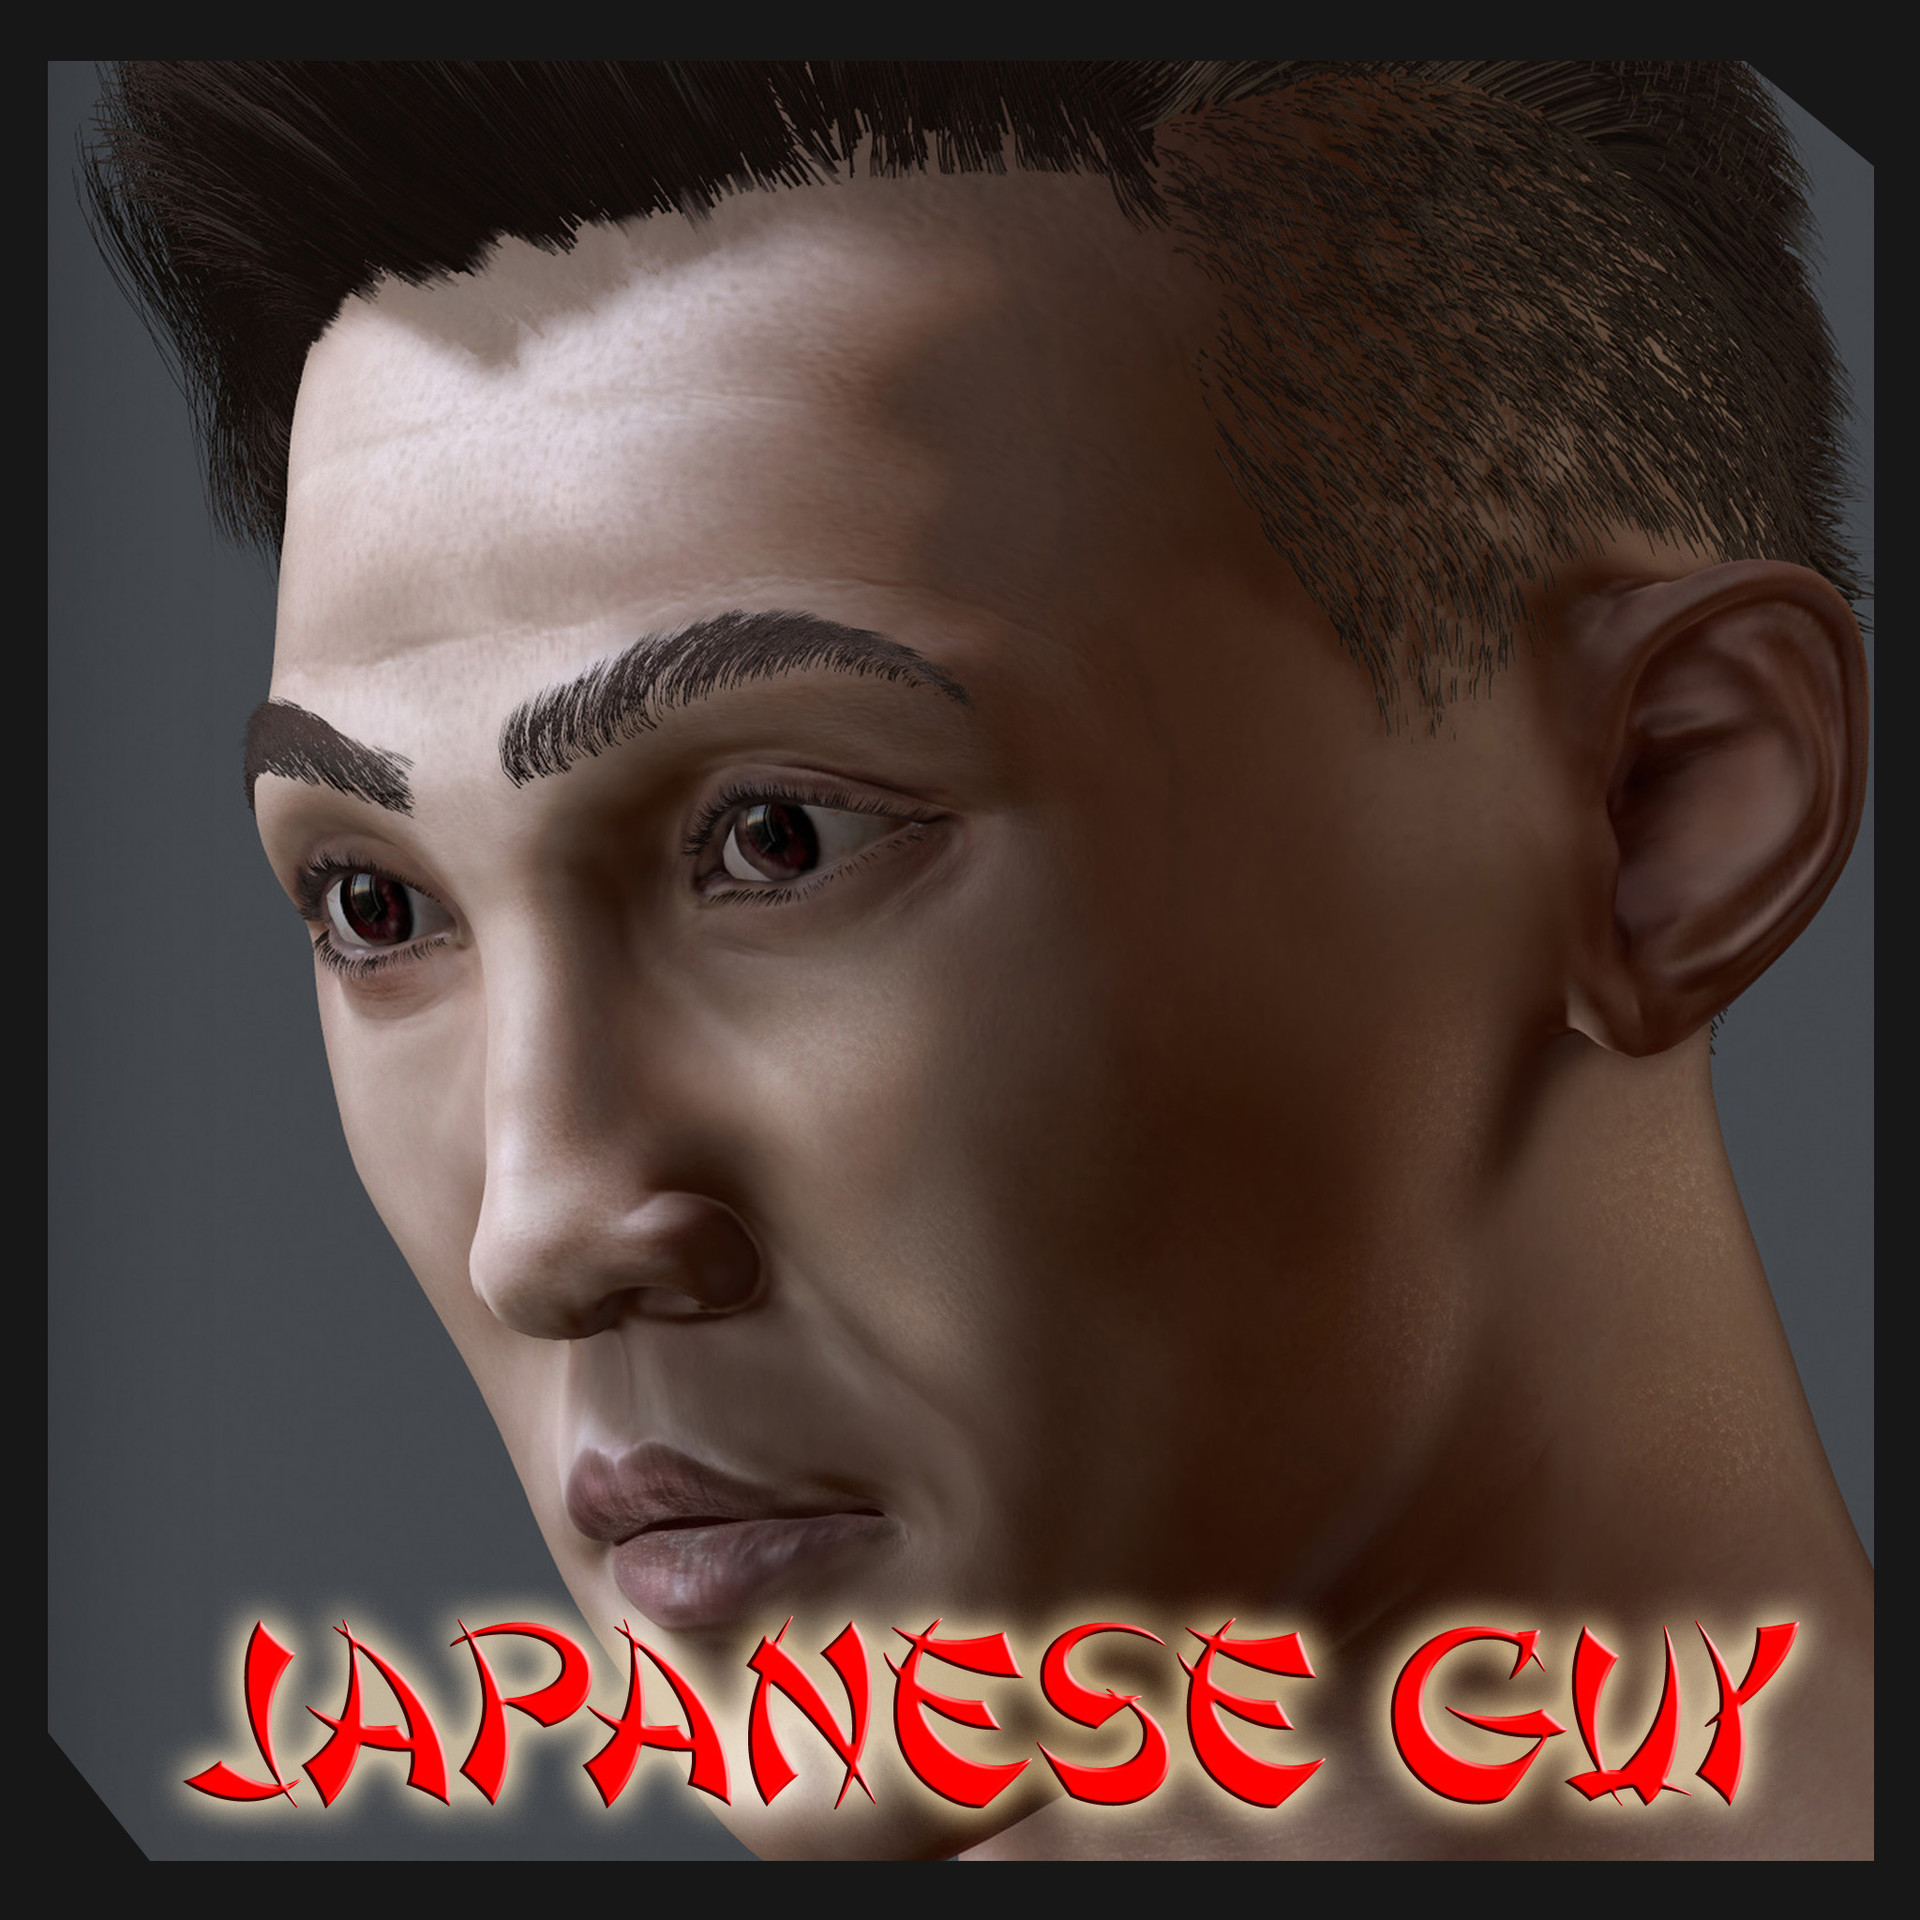 Japanese Guy By Sergio Mengual